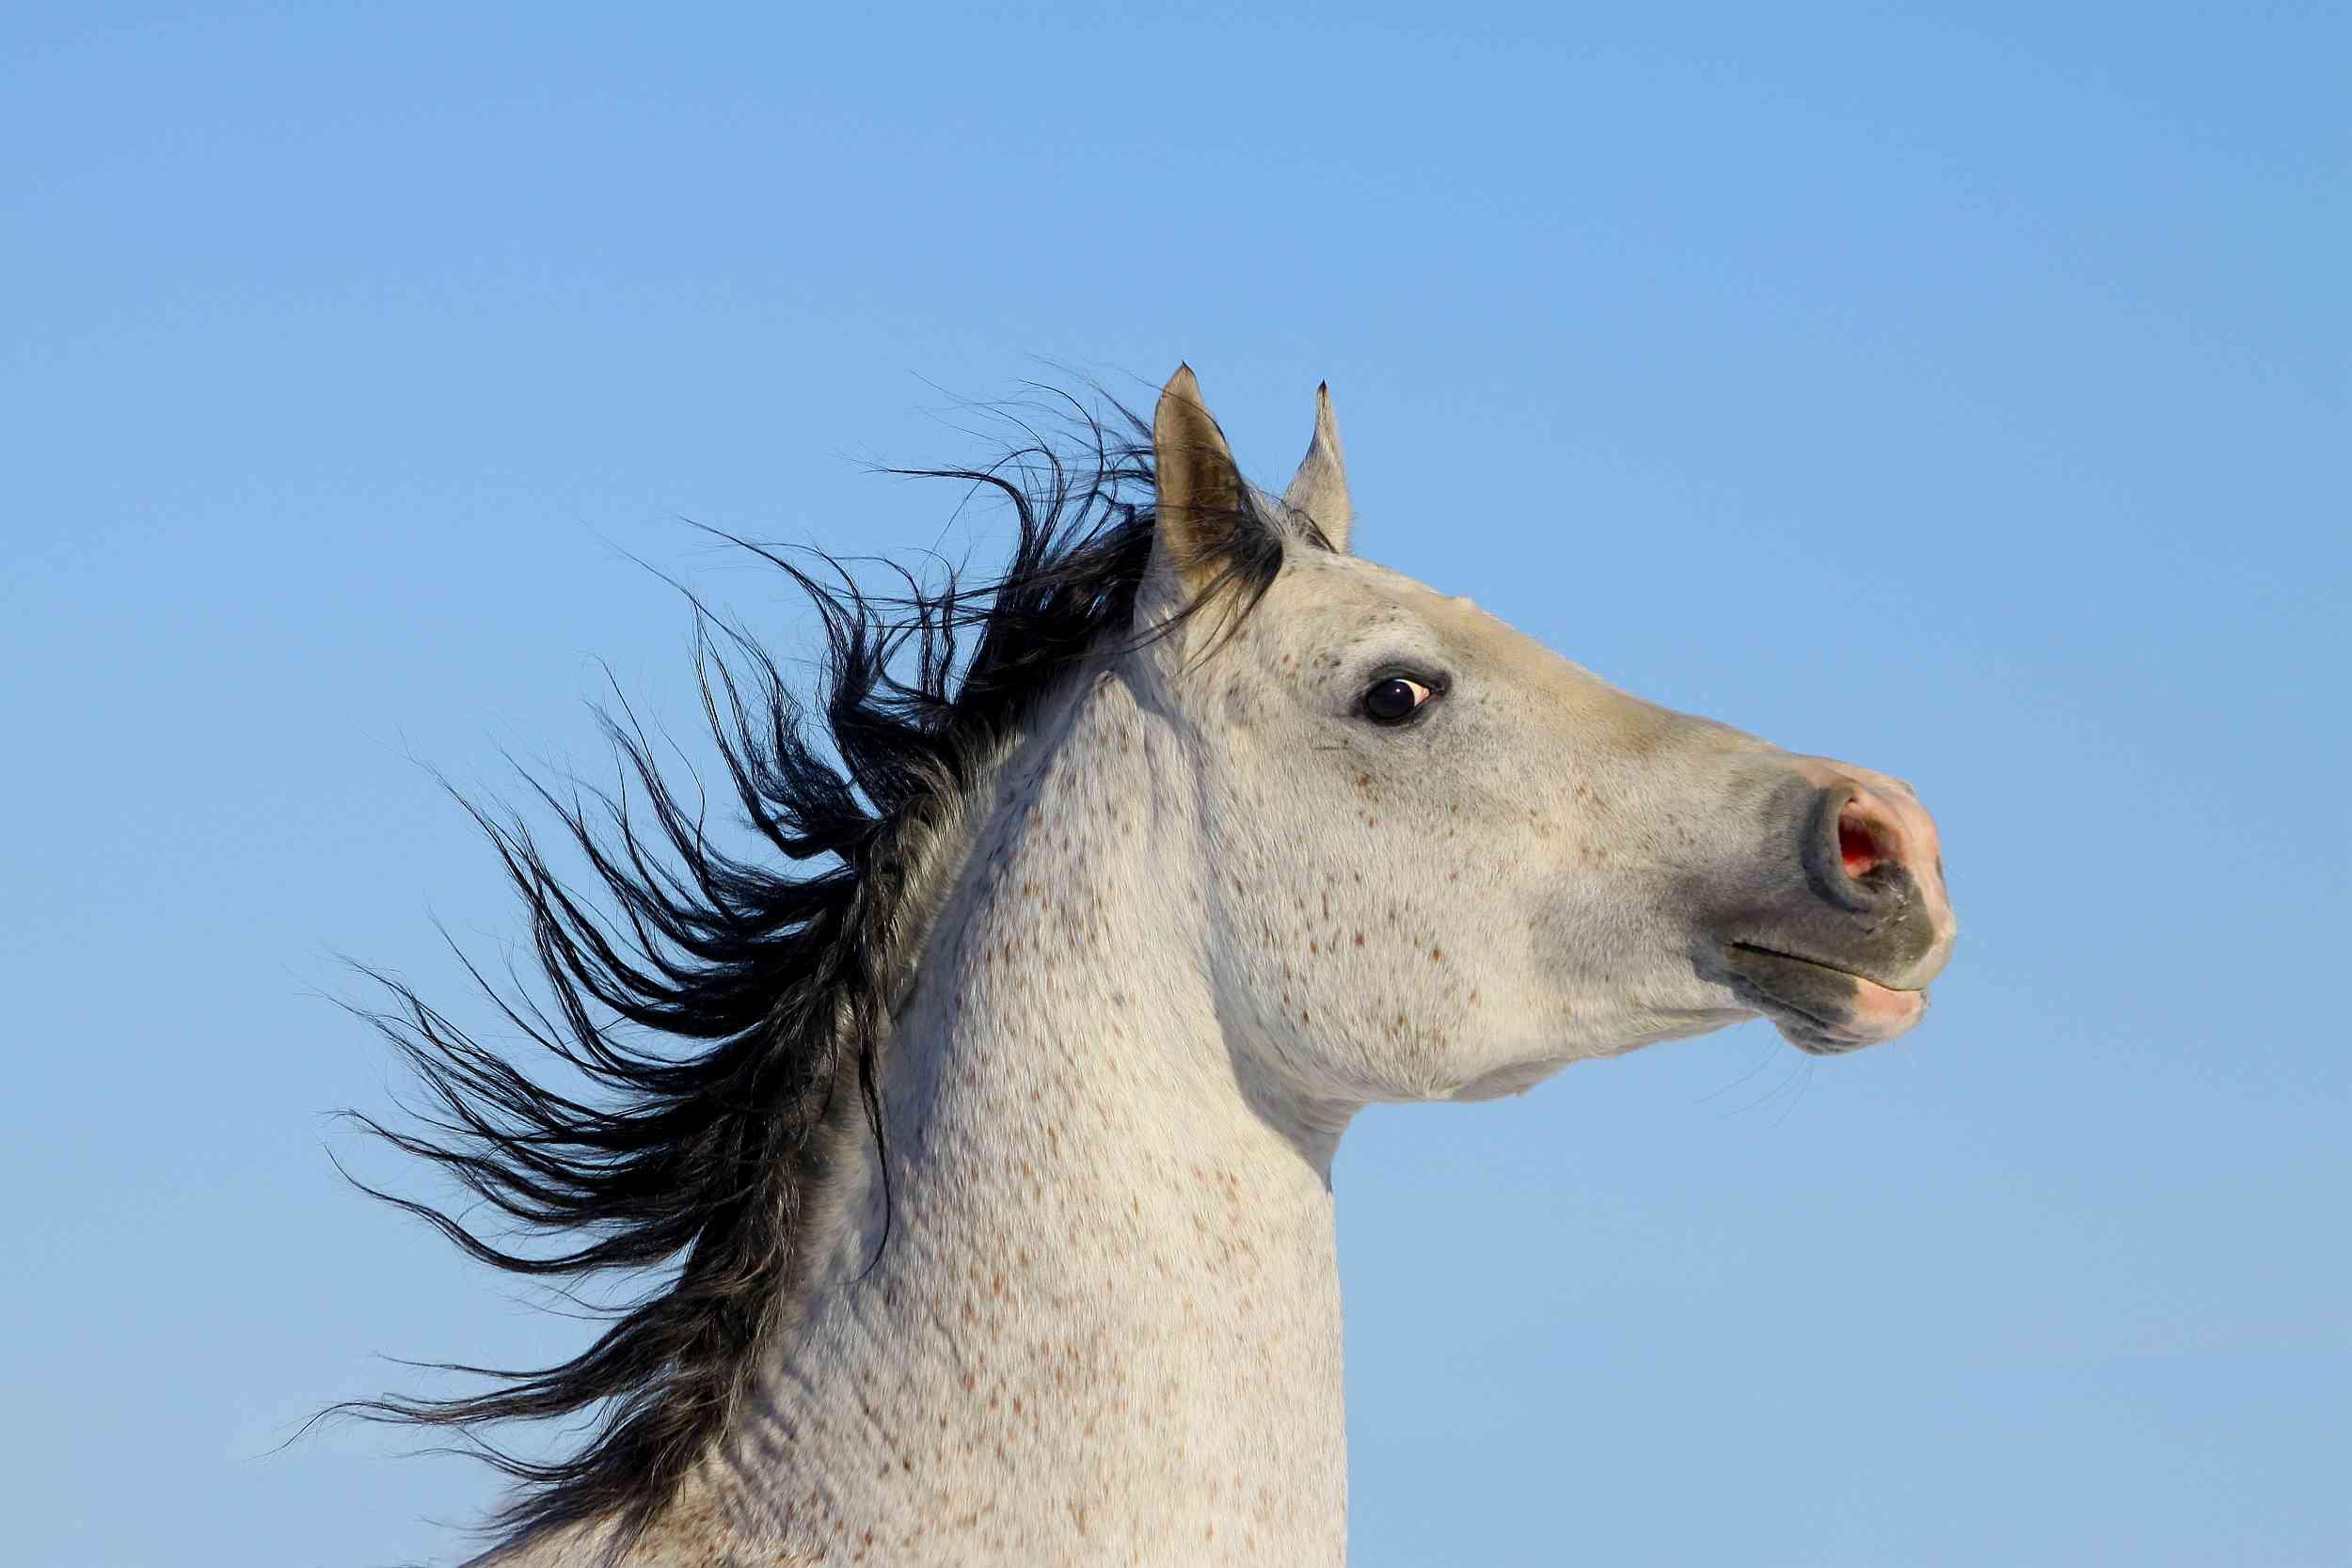 Anything that causes a horse to toss its head or fly back can cause further problems.